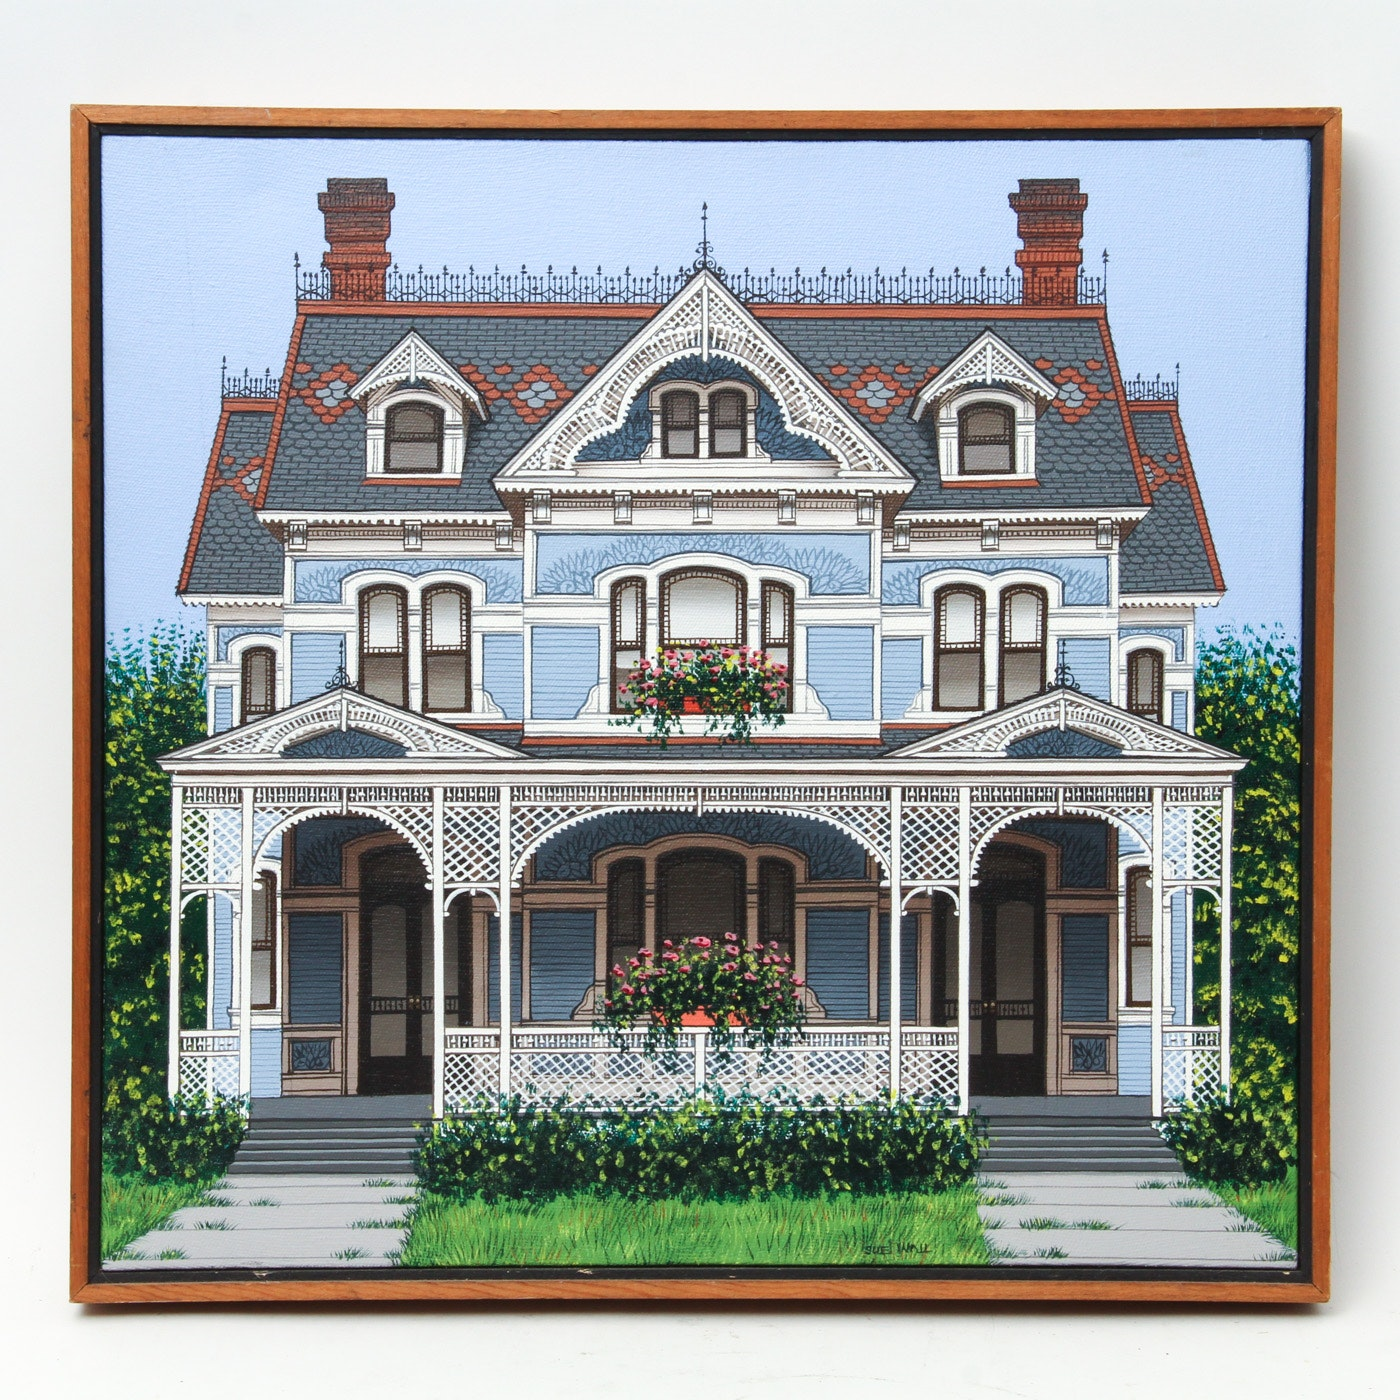 Sue Wall Acrylic on Canvas Victorian House Rendering